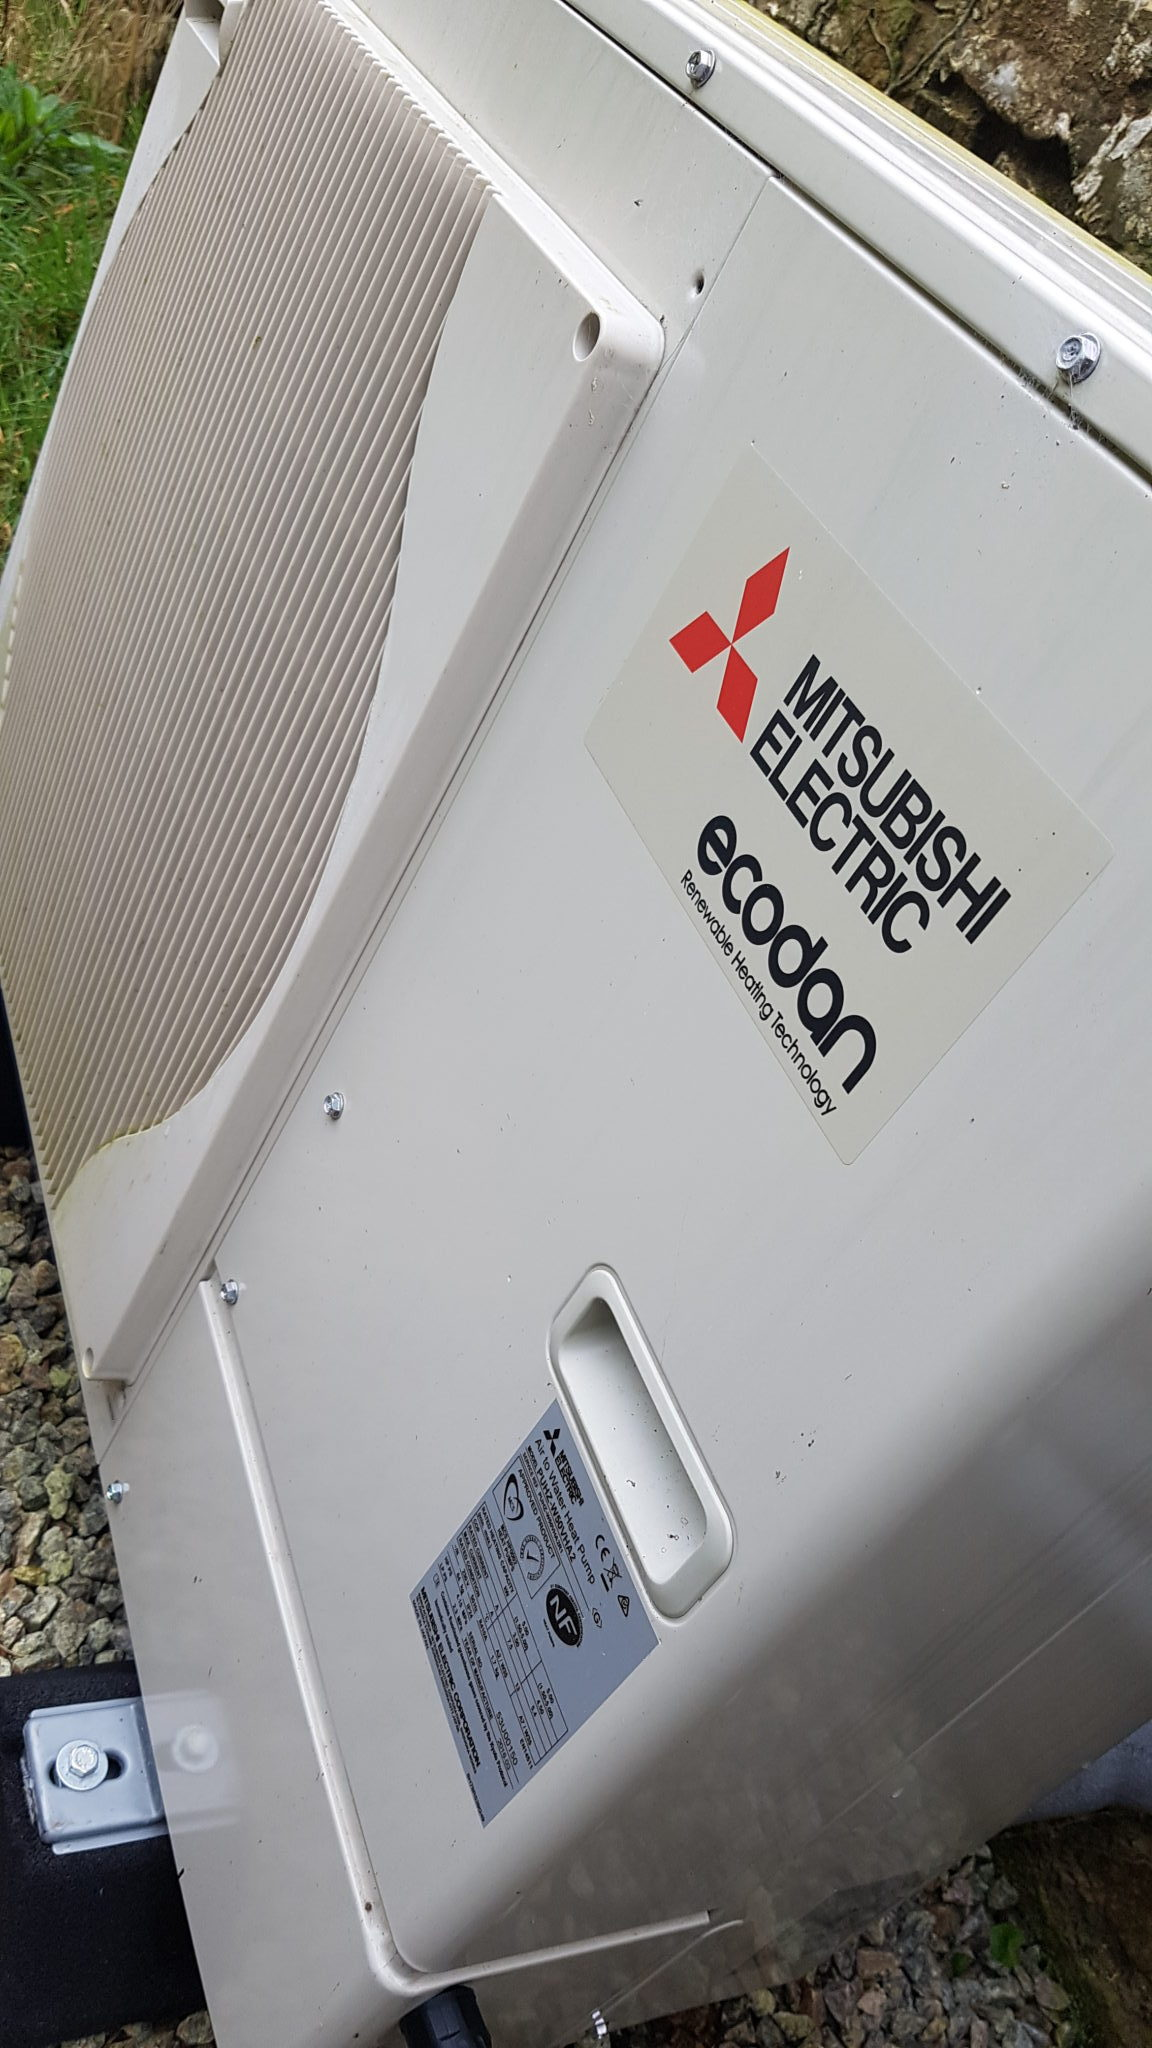 8.5kW Mitsubishi Ecodan air source heat pump installation in Helston, Cornwall.